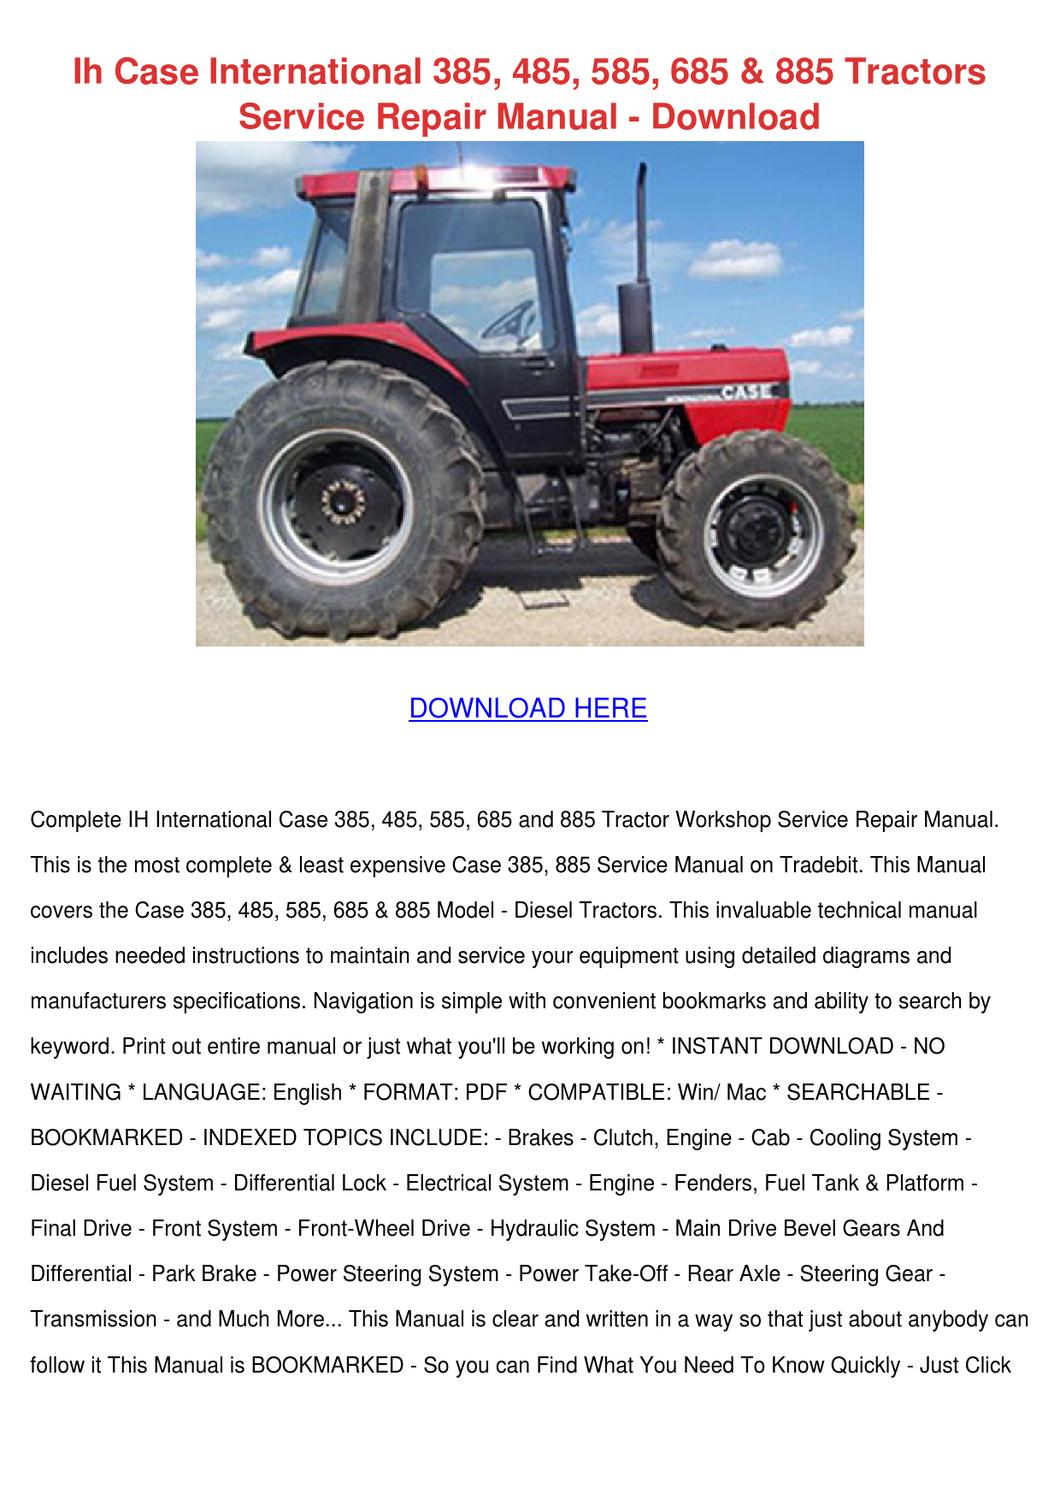 hight resolution of case 385 tractor wiring diagram wiring diagram case 385 tractor wiring diagram source case ih 485